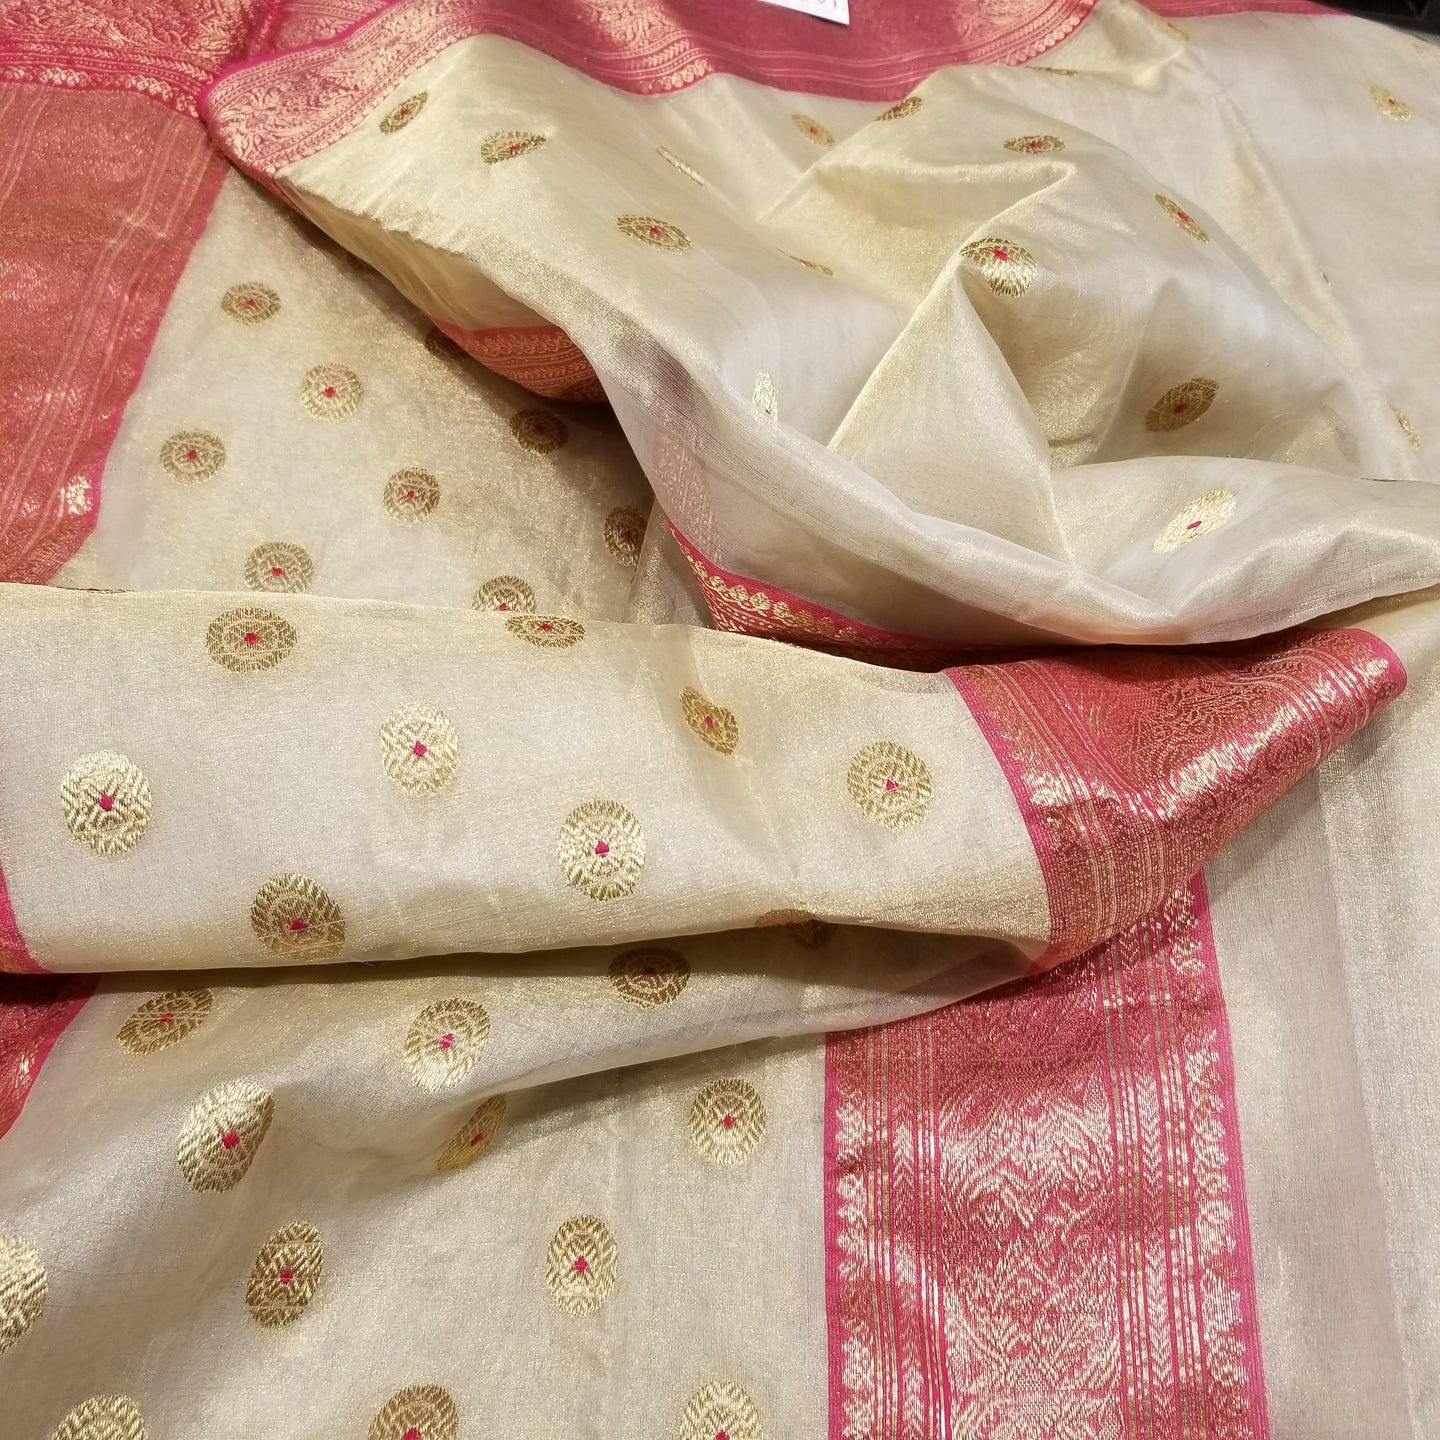 Off-White Chanderi Handwoven Pure Silk by Tissue Sari with Deep Pink Border